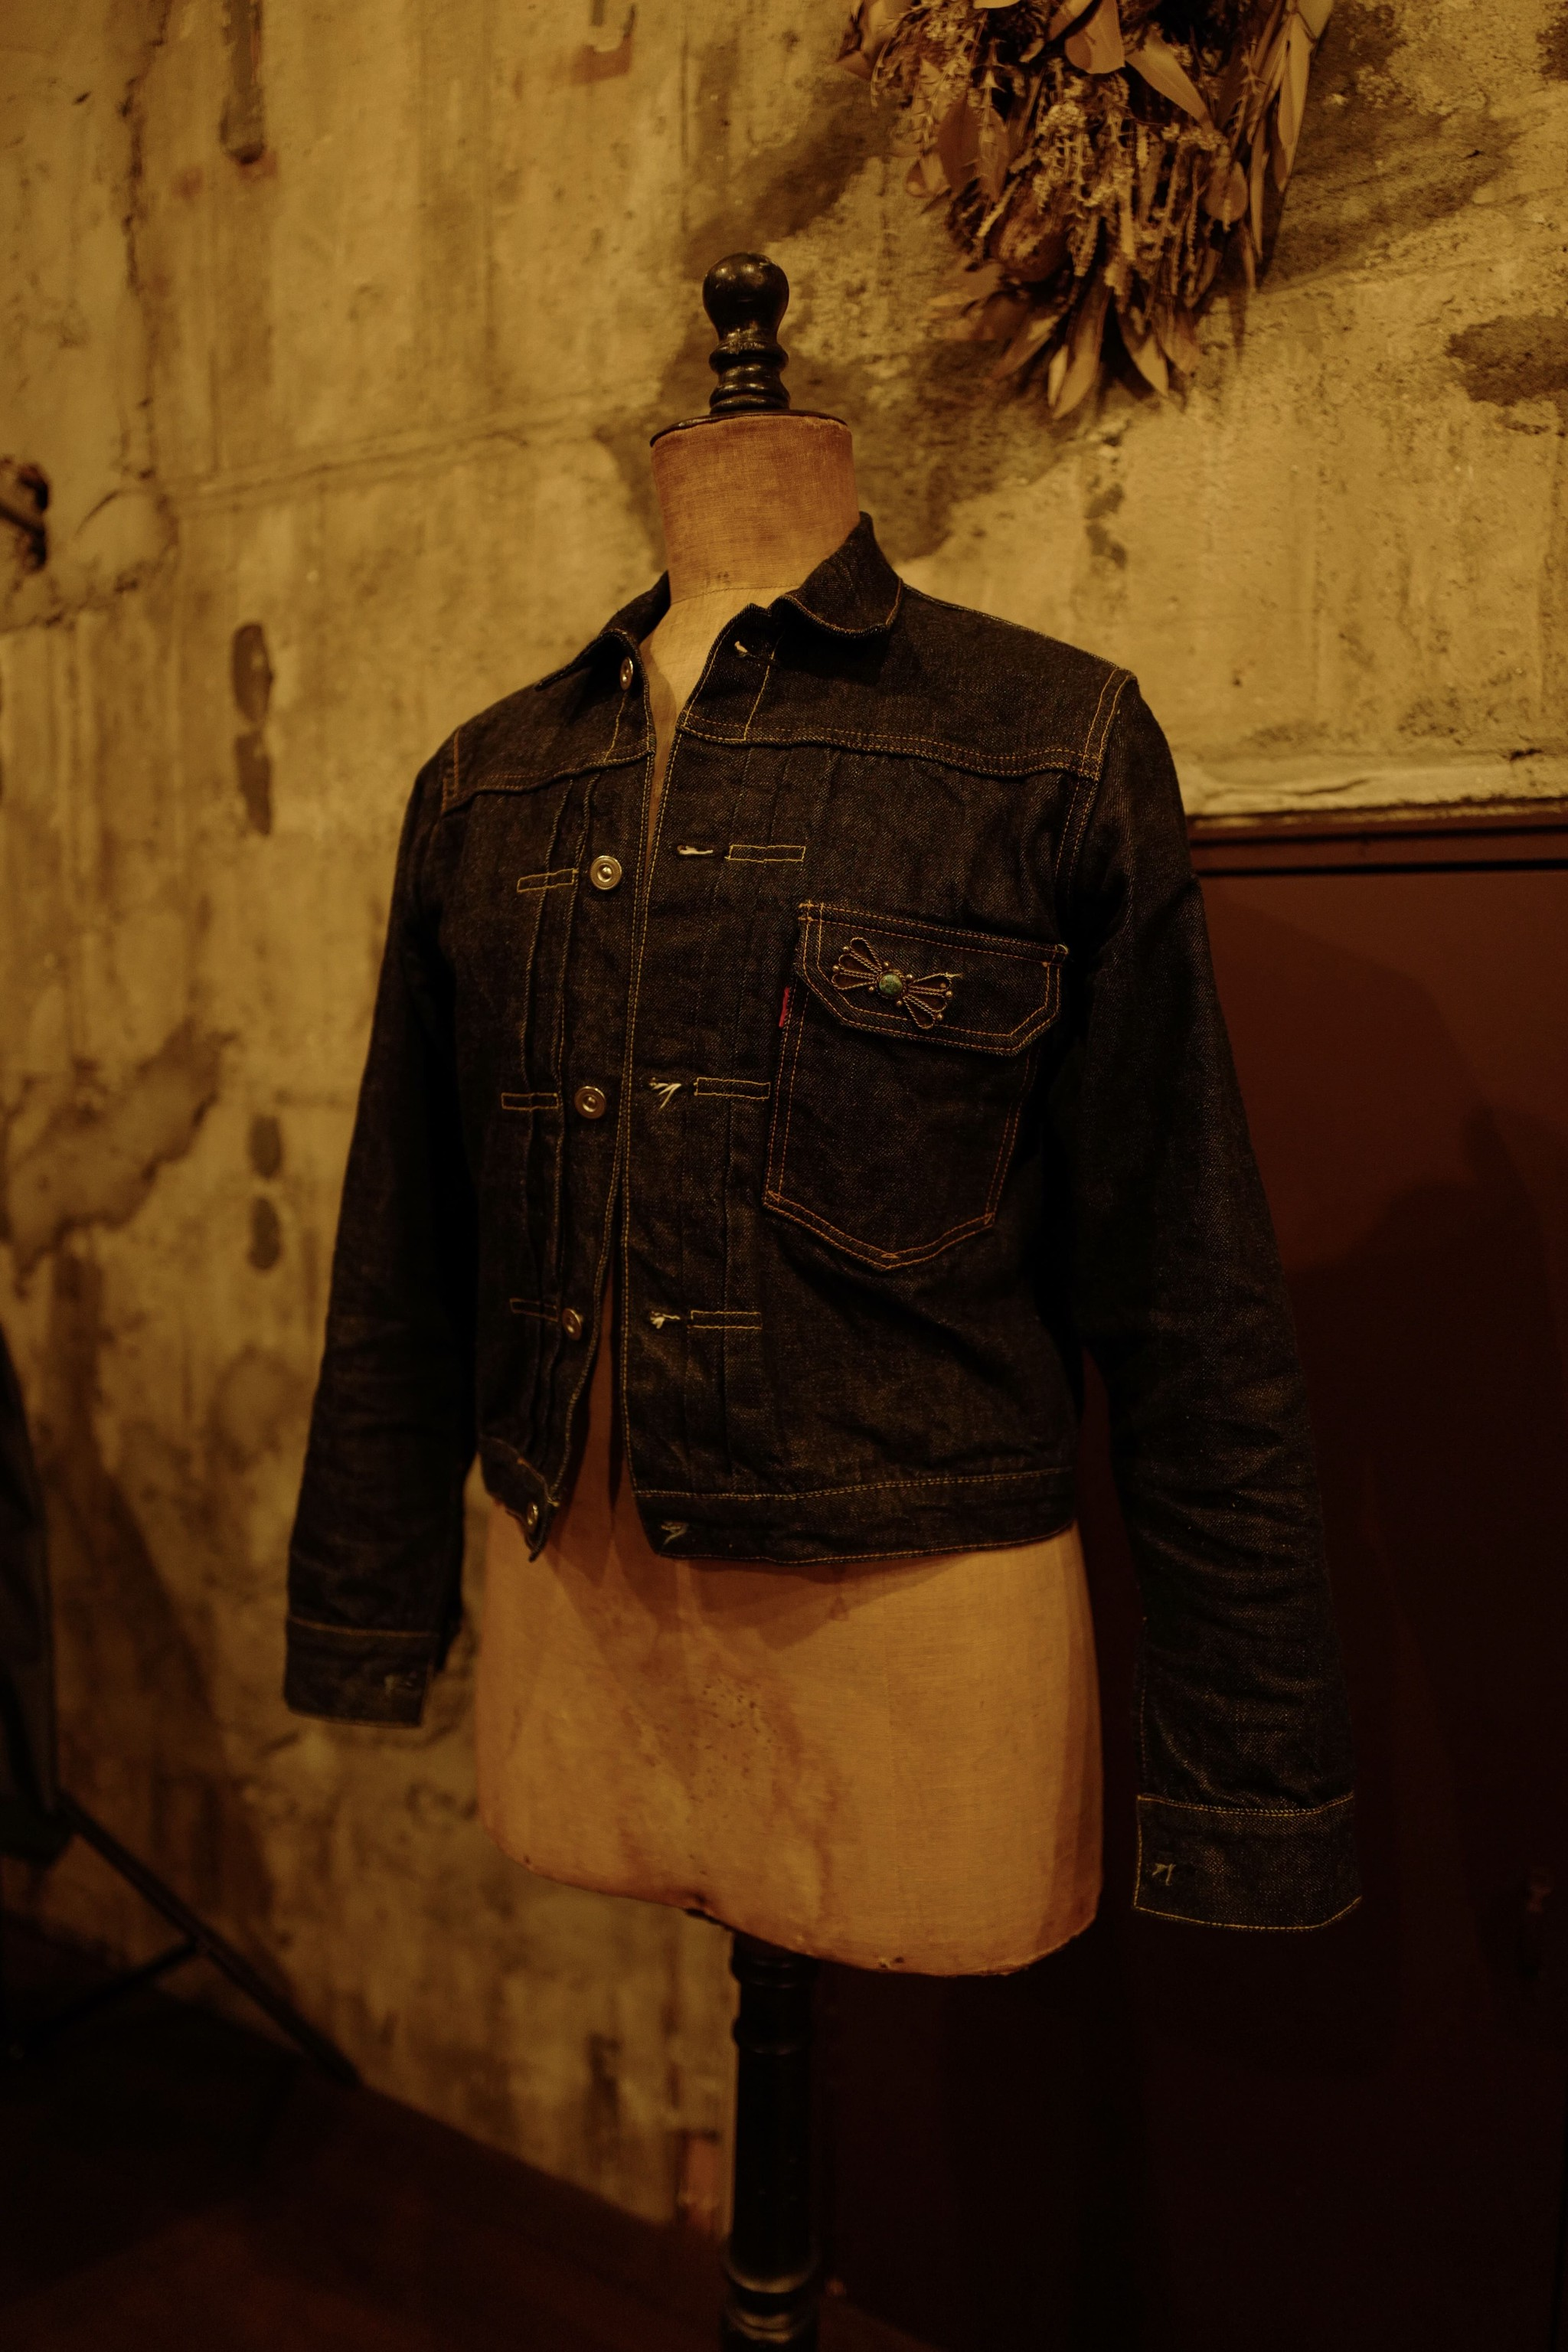 Bryceland's denim jacketの入荷